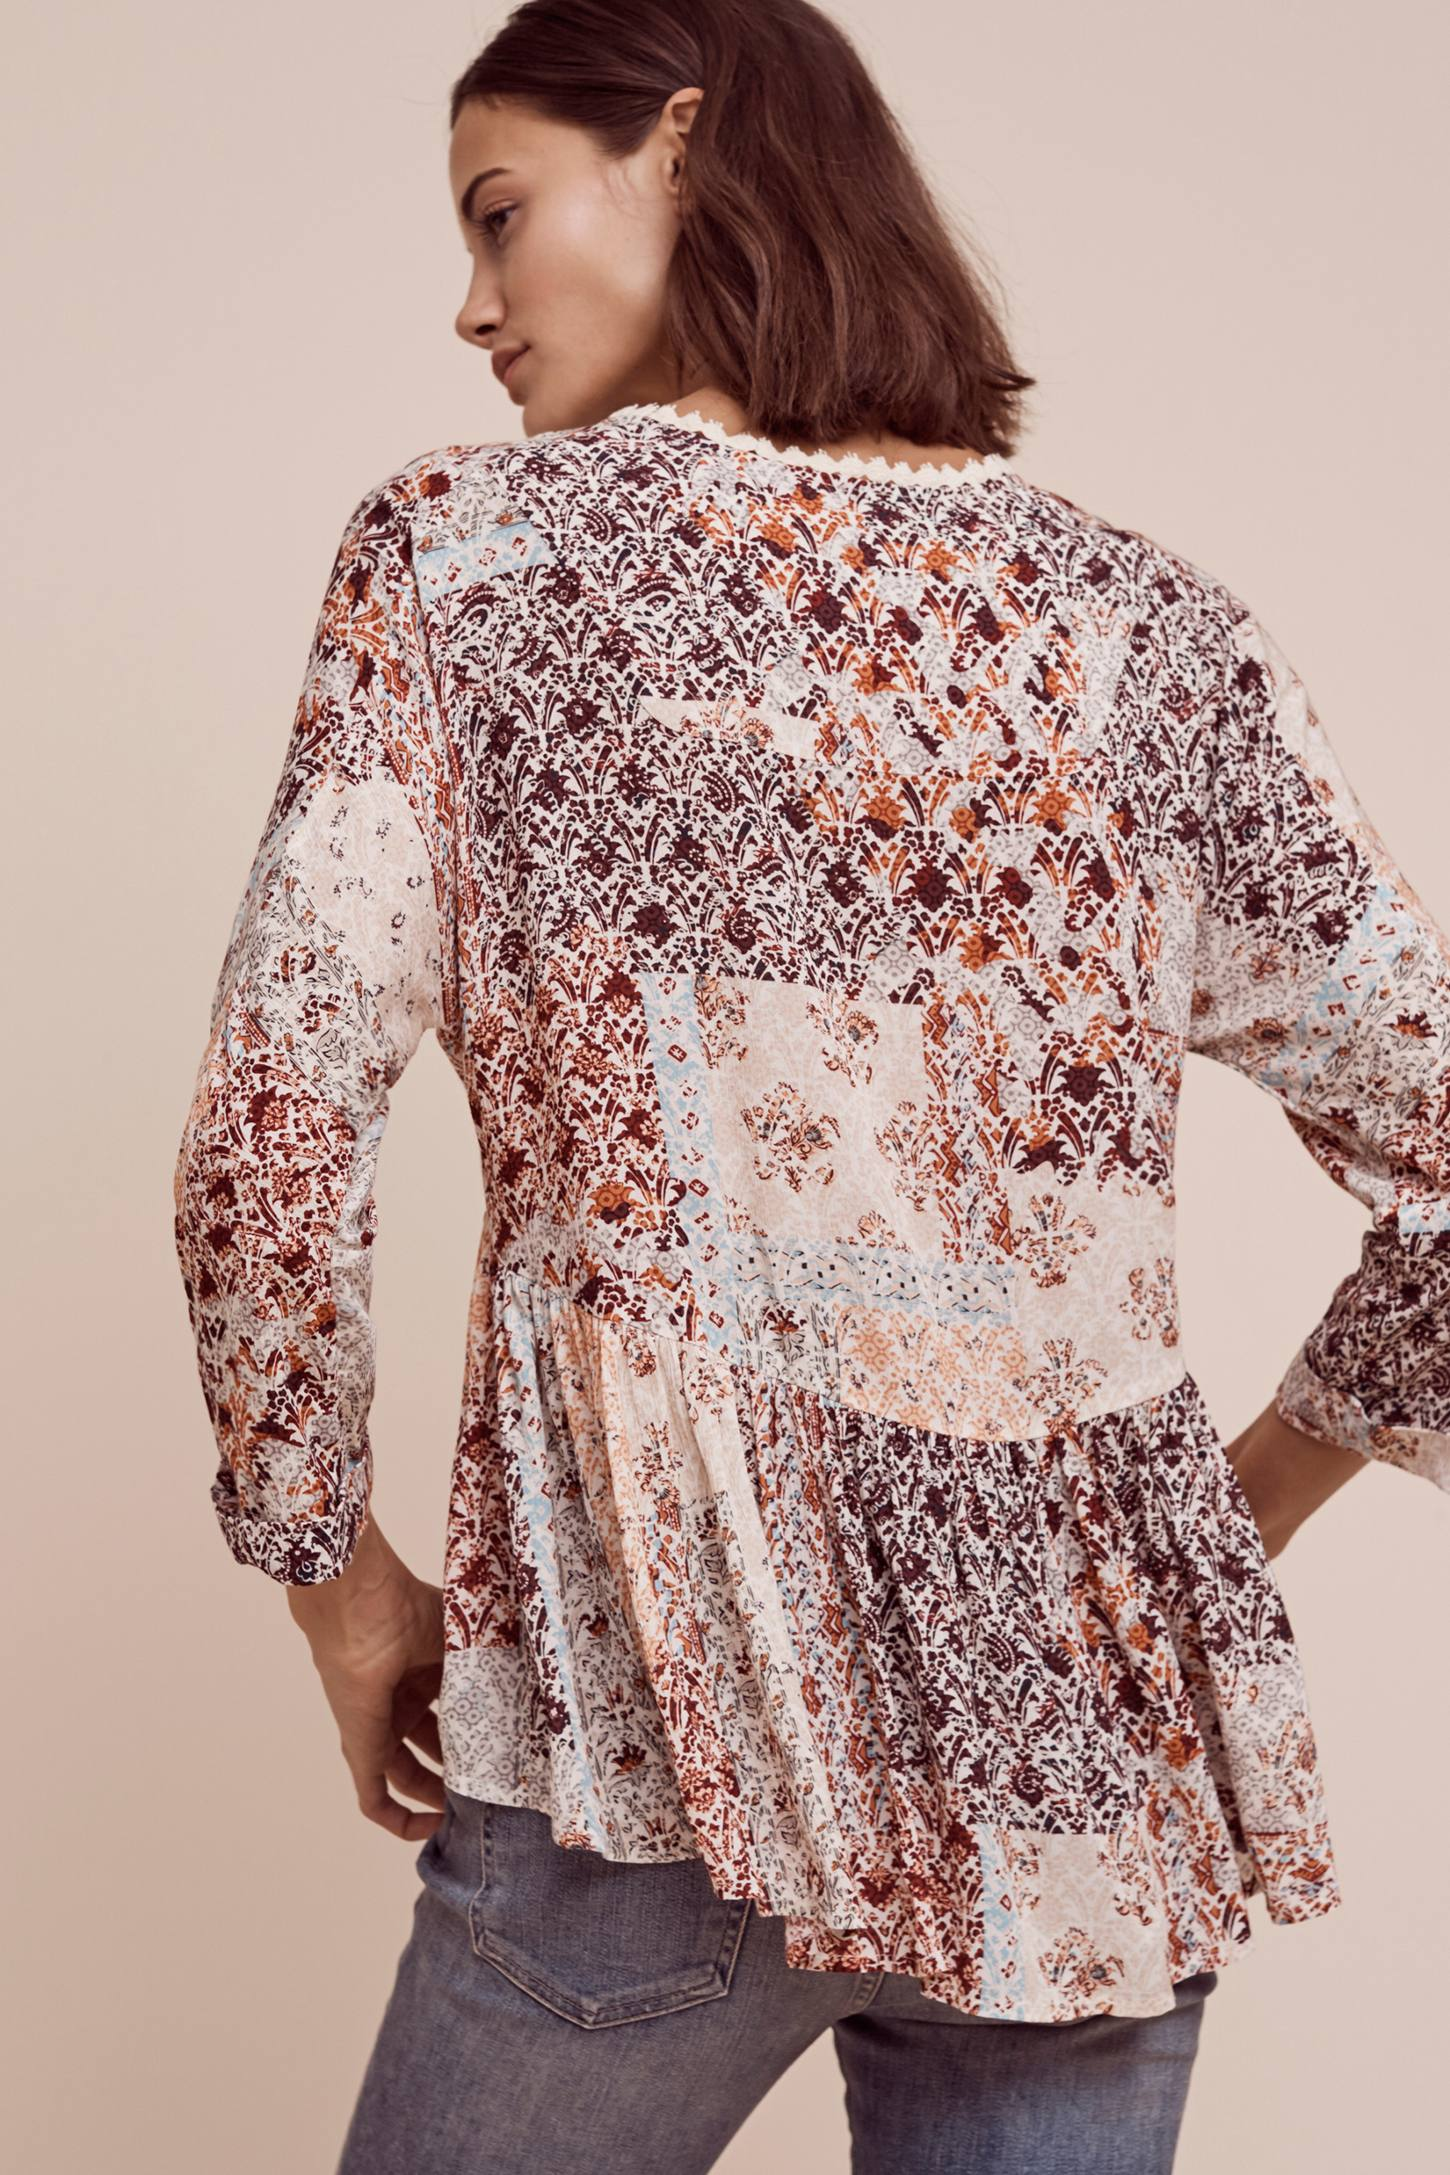 Auxerre Patchwork Top